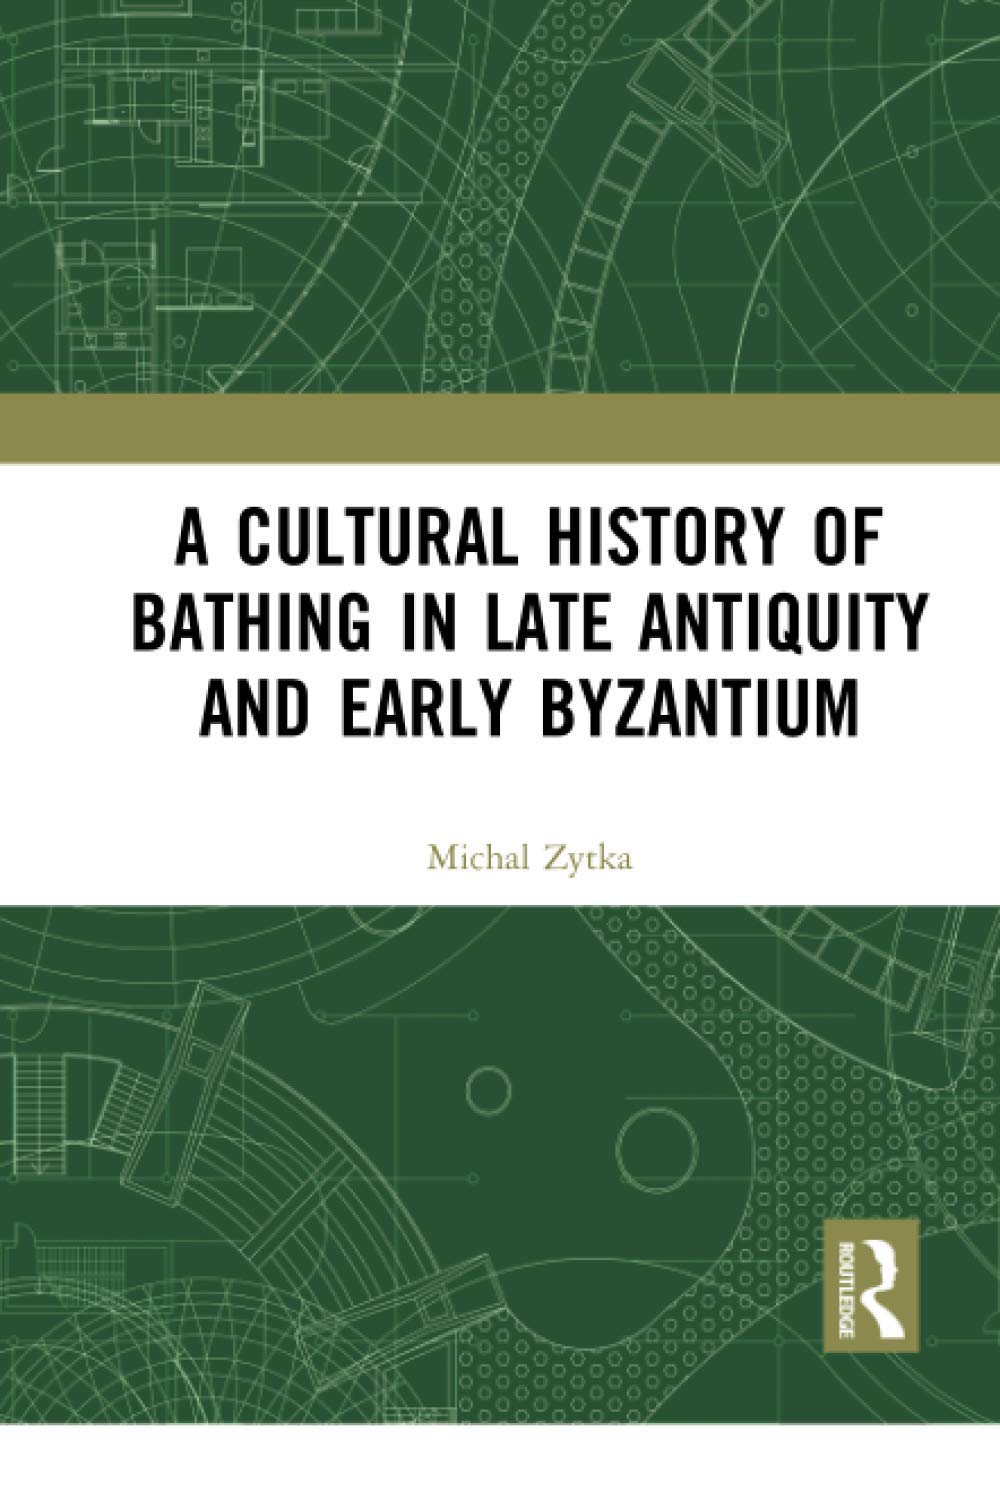 A Cultural History of Bathing in Late Antiquity and Early Byzantium